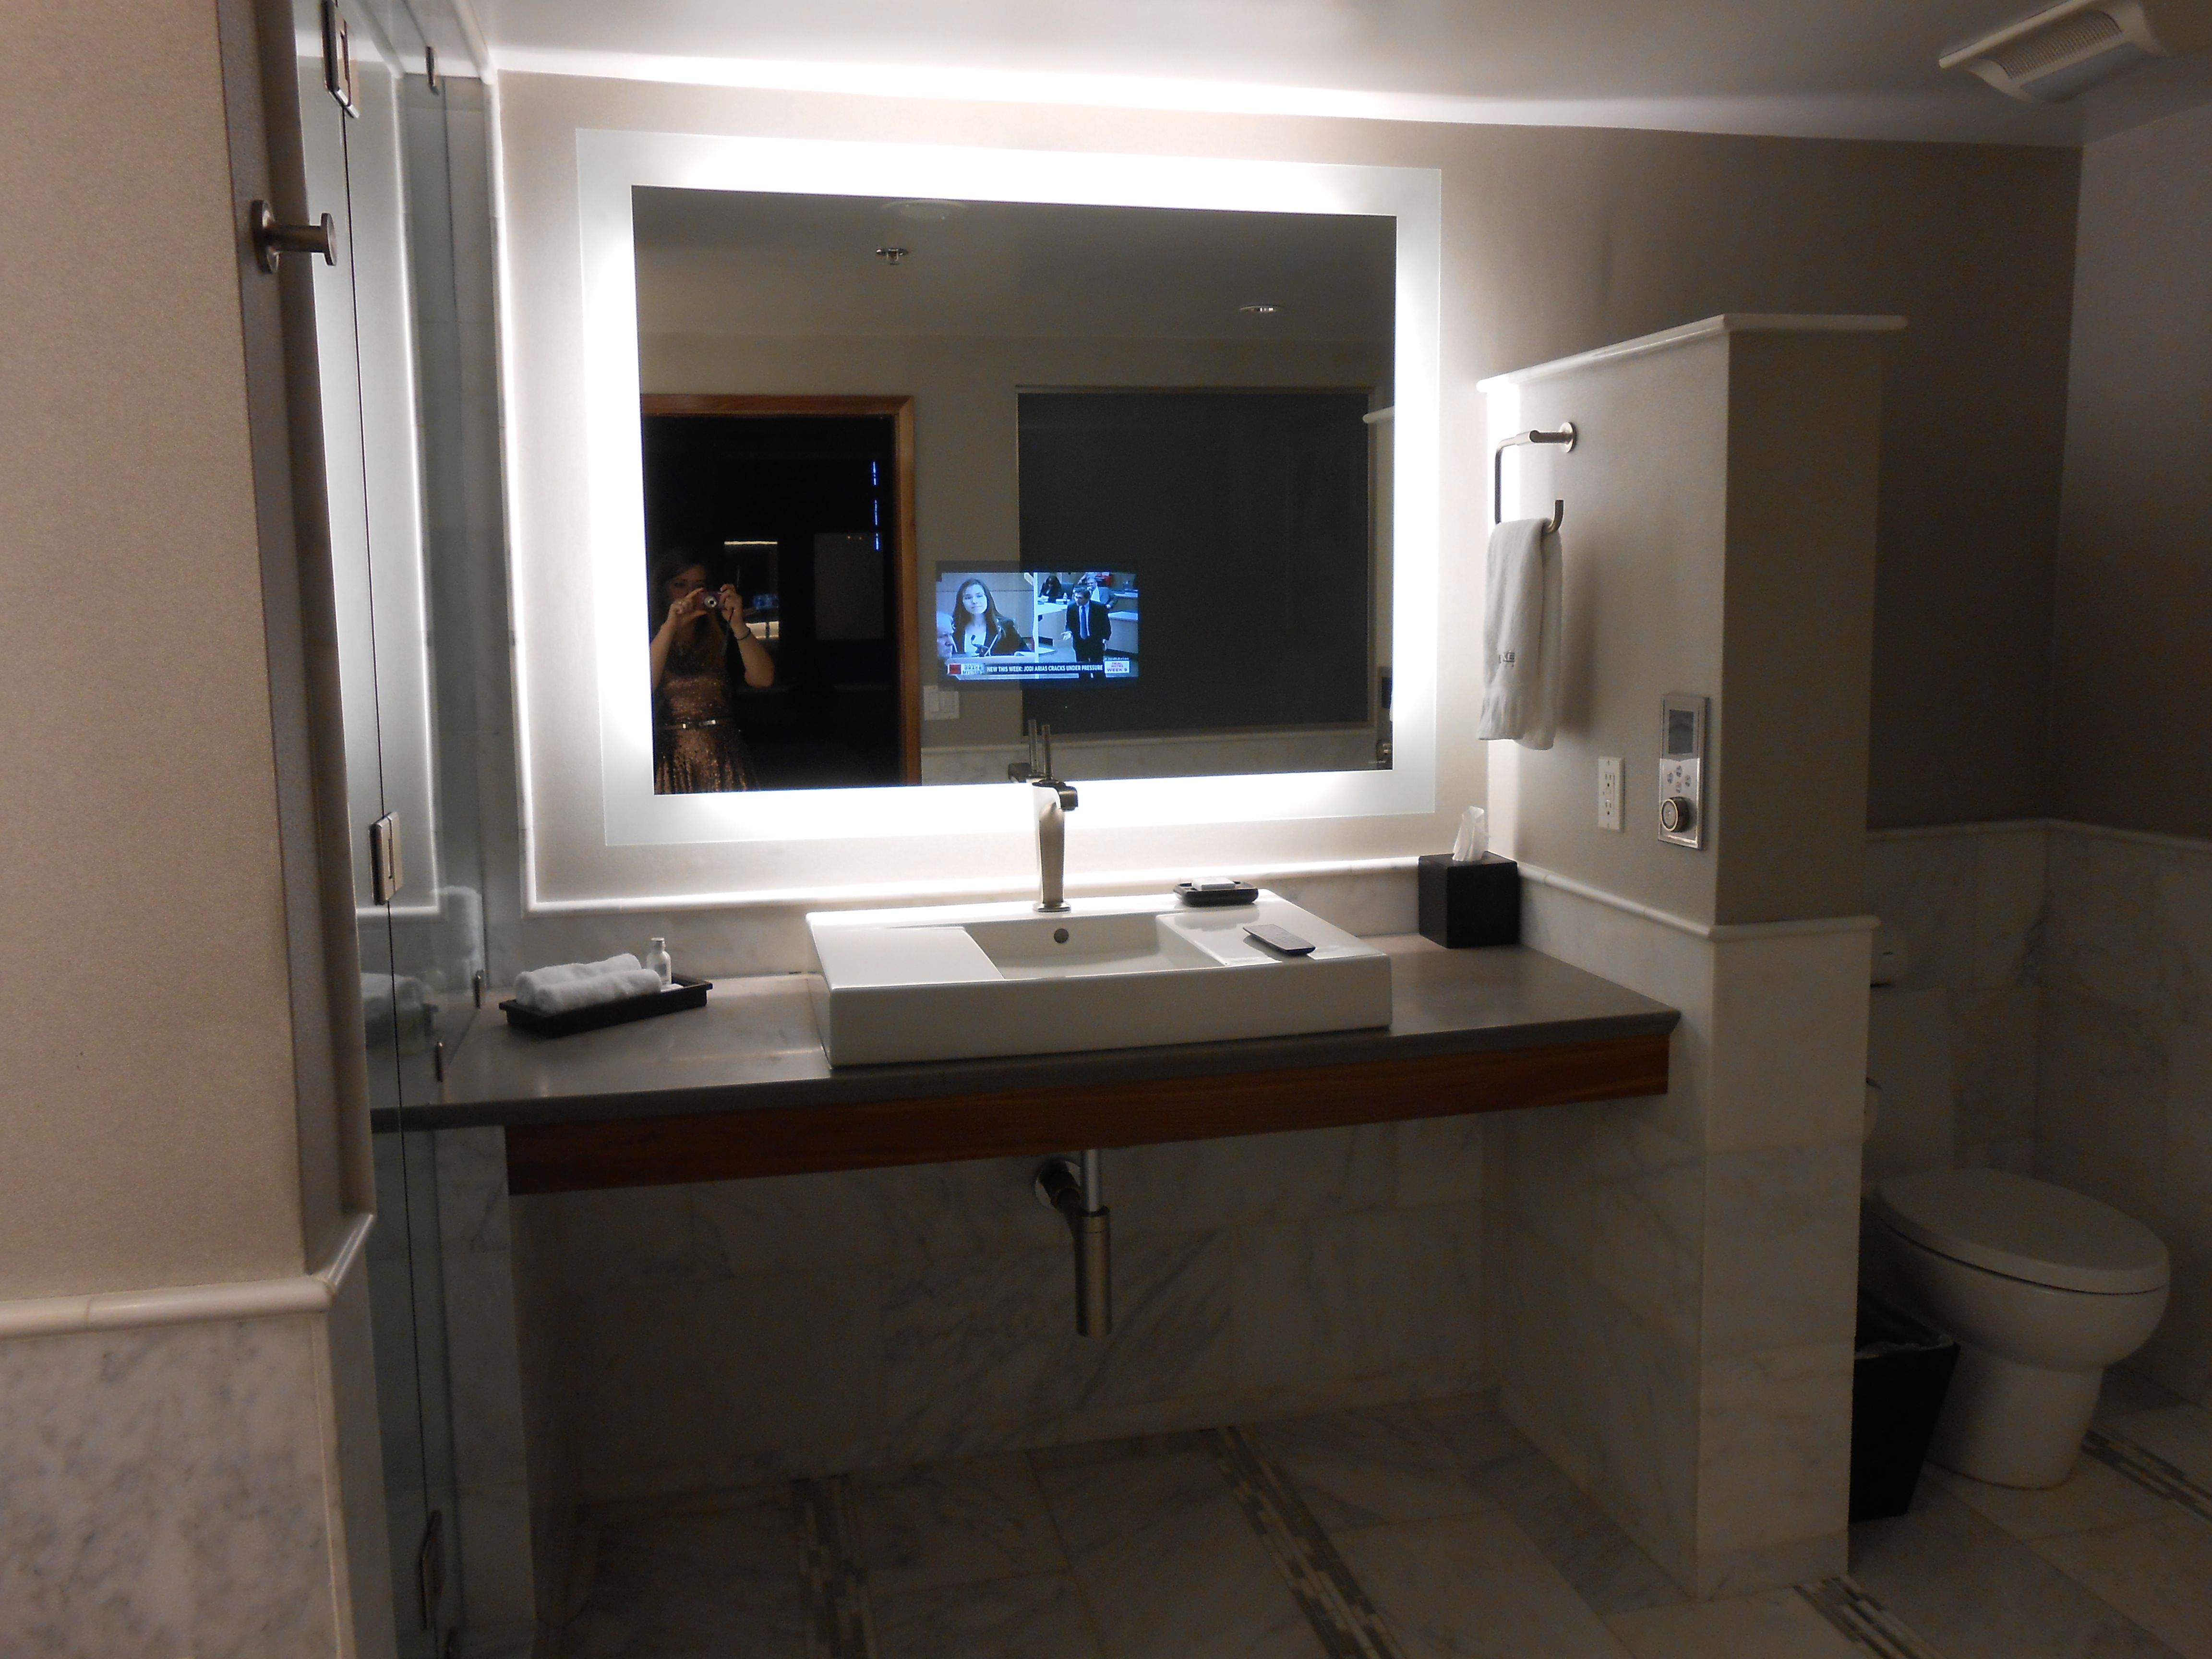 tv in the bathroom mirror house planning